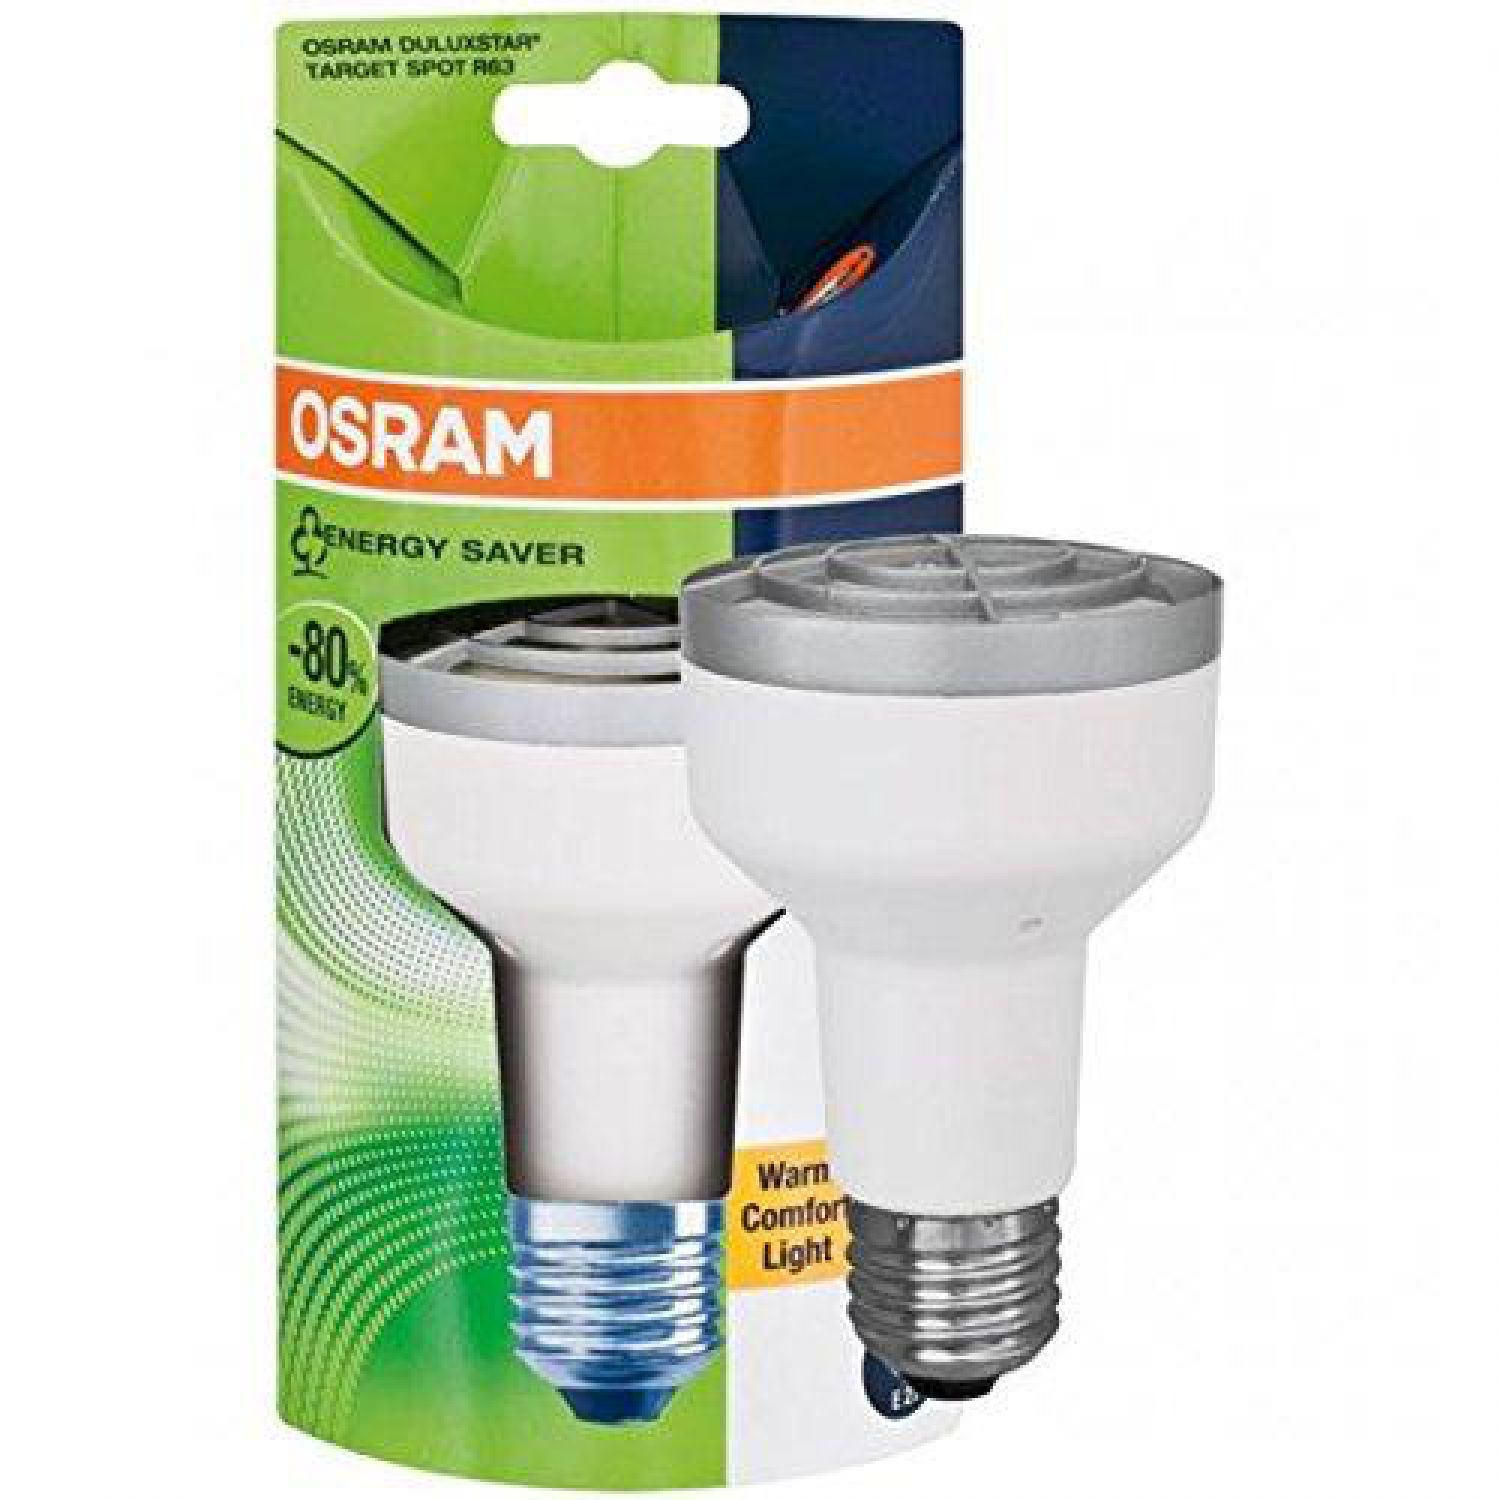 osram duluxstar target spotlight r63 13w e27 warm white. Black Bedroom Furniture Sets. Home Design Ideas